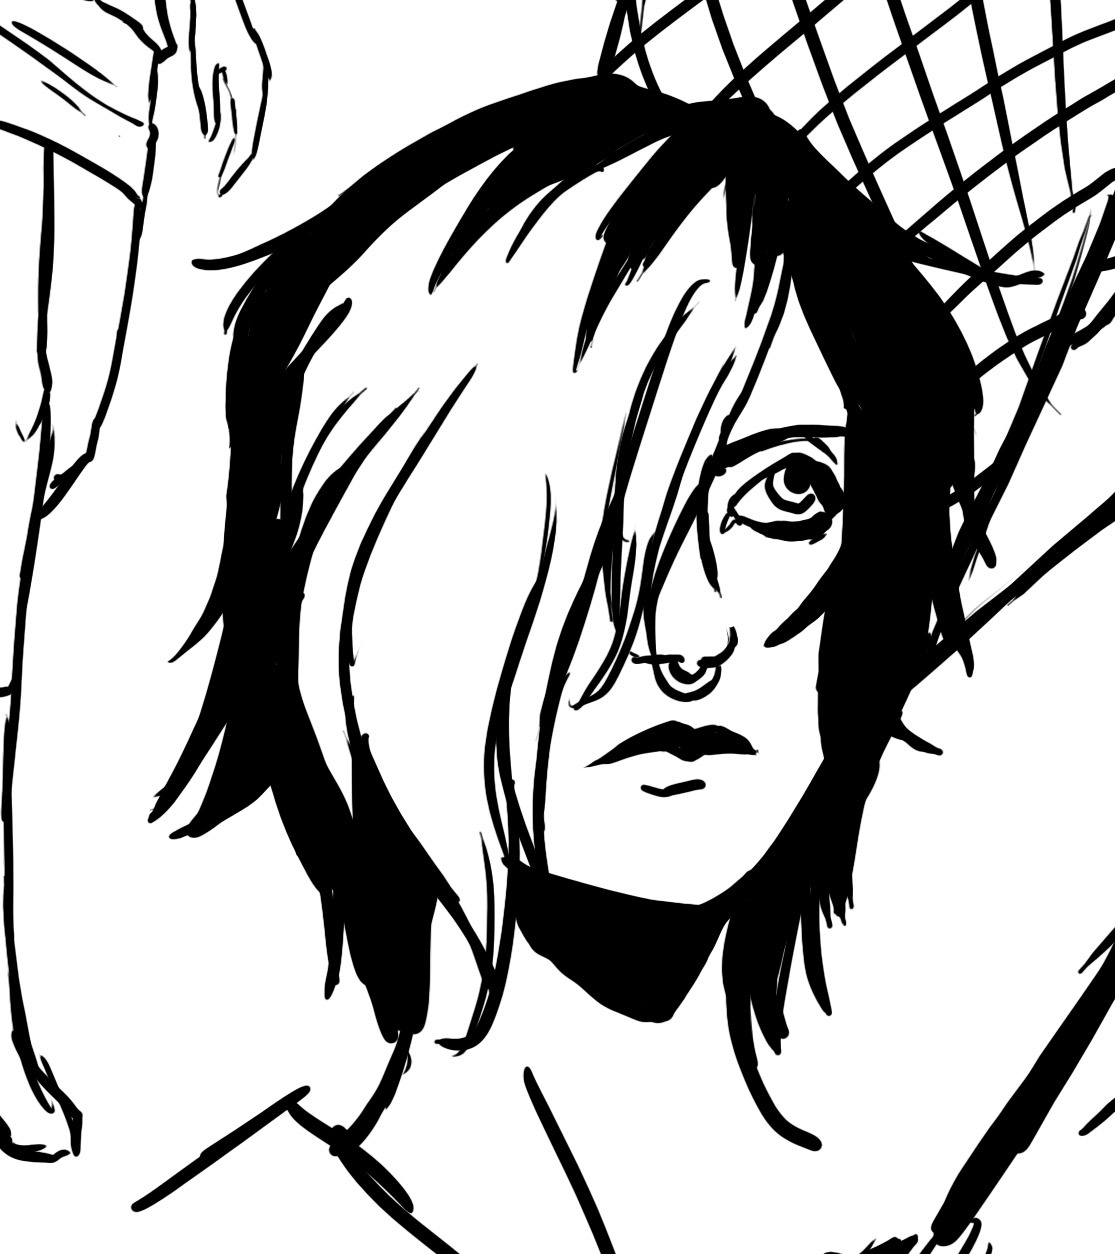 So happy Mira's first page turned out well in the inking process.I'd stay up all night just to get it the way I wanted to.Turns out I got it on my first try!Who's da man?